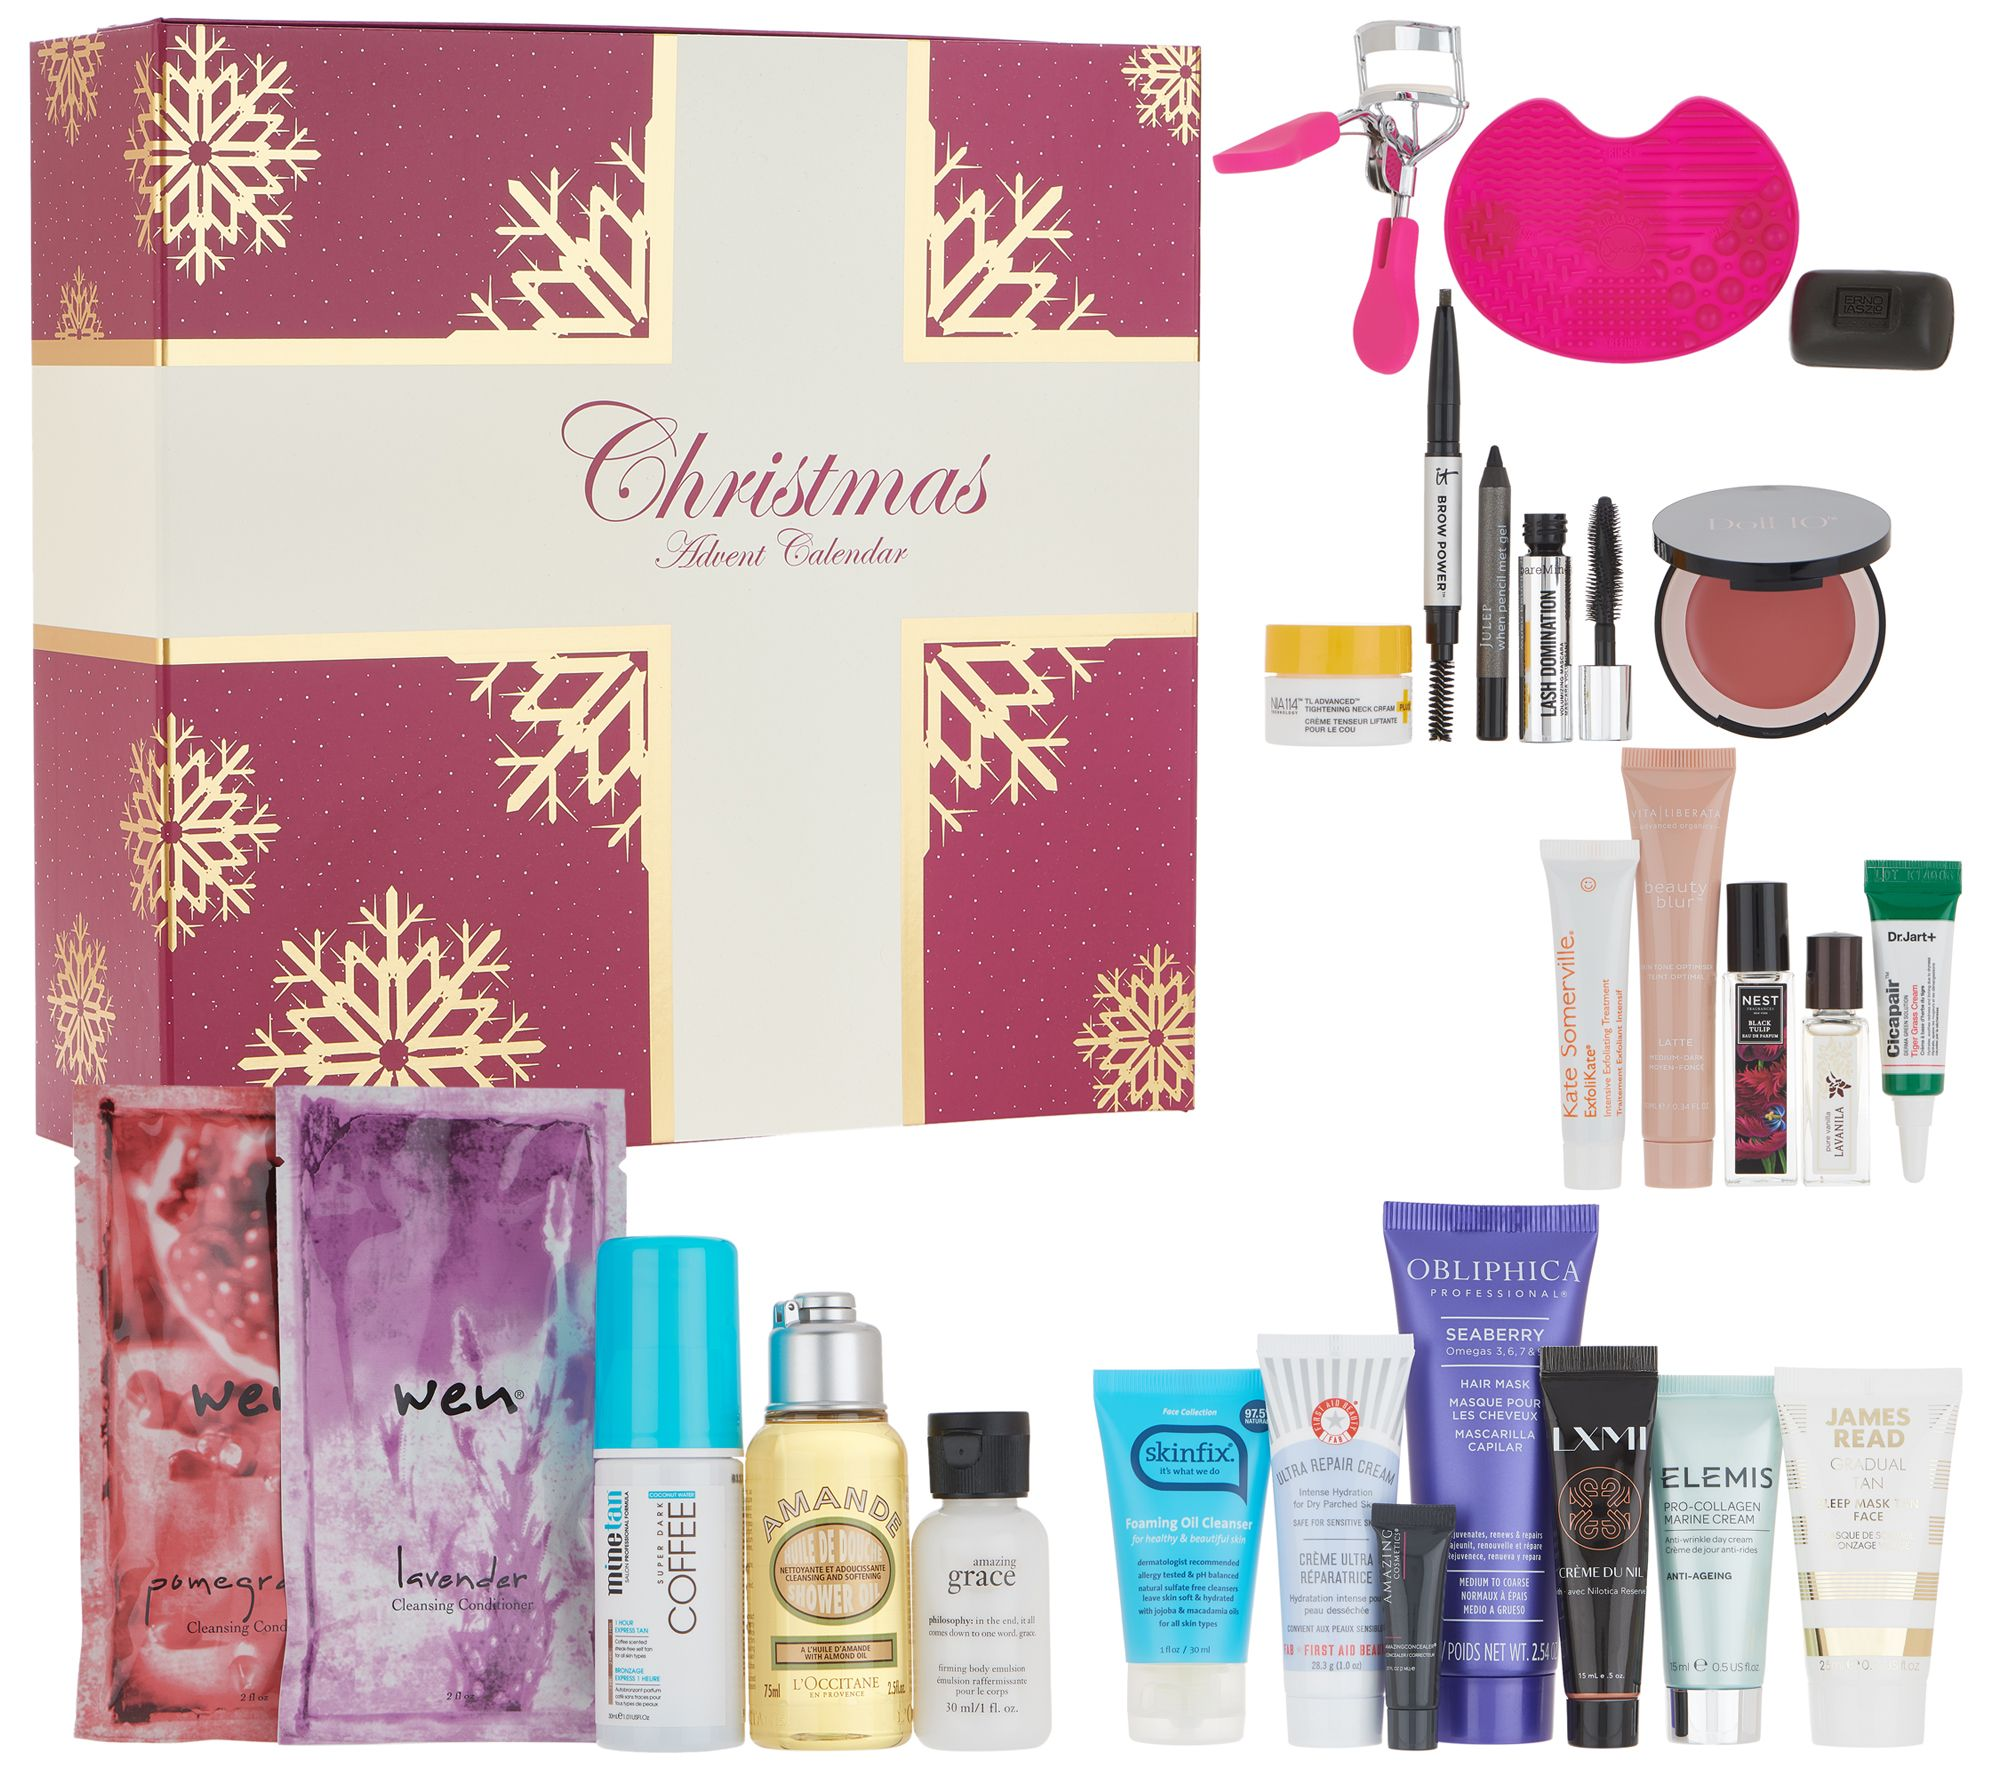 qvc beauty christmas advent calendar 24-piece collection - page 1